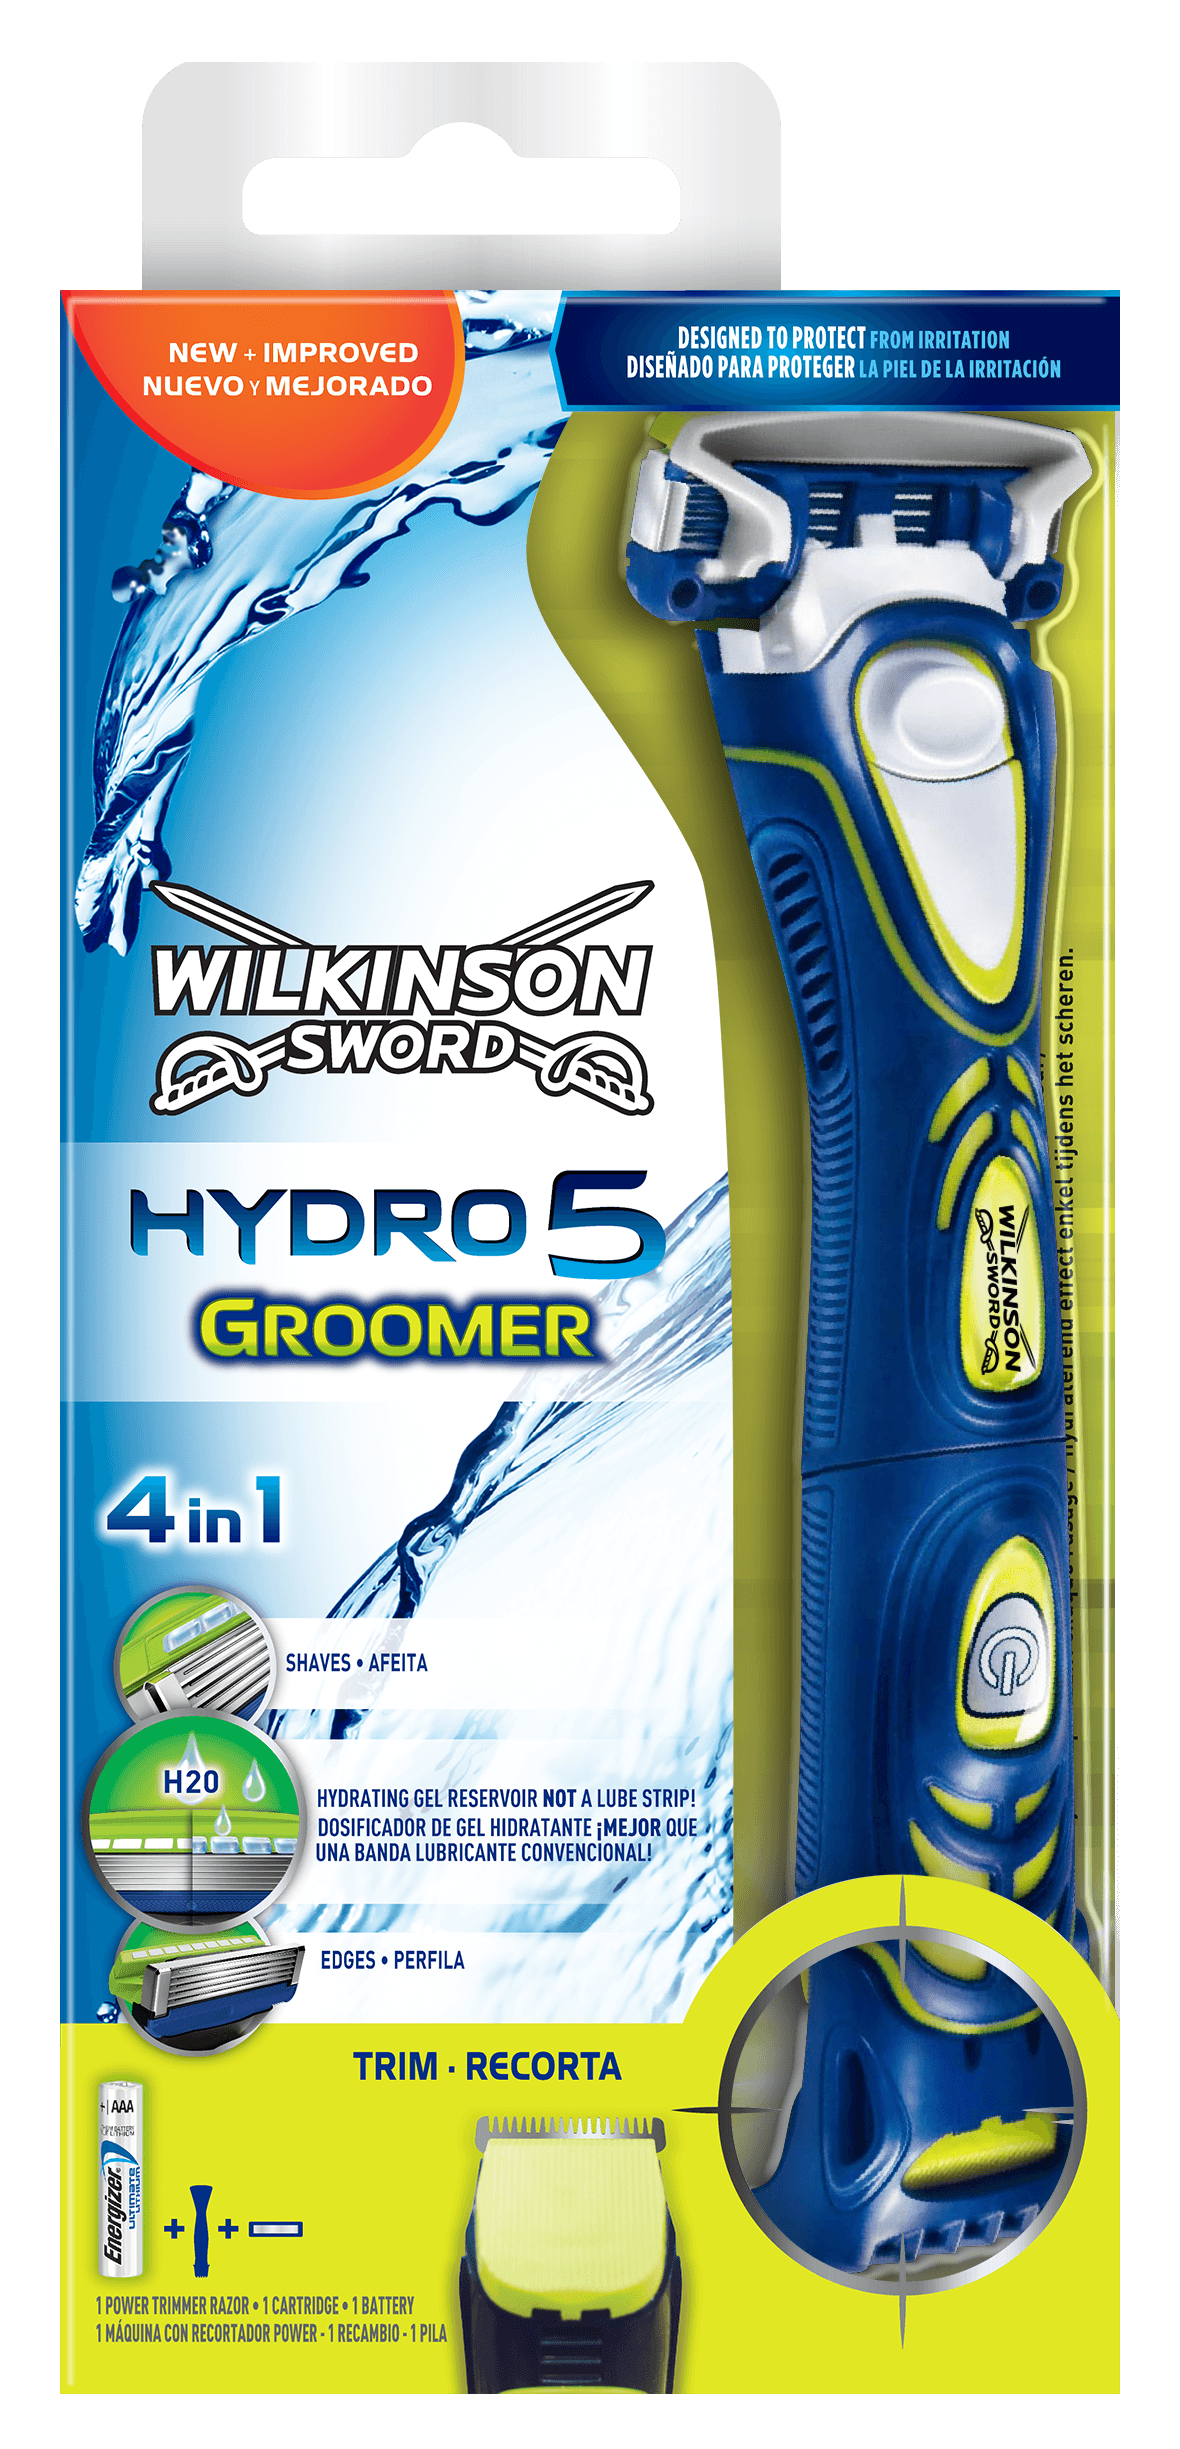 Wilkinson Sword Gifts for Father's Day